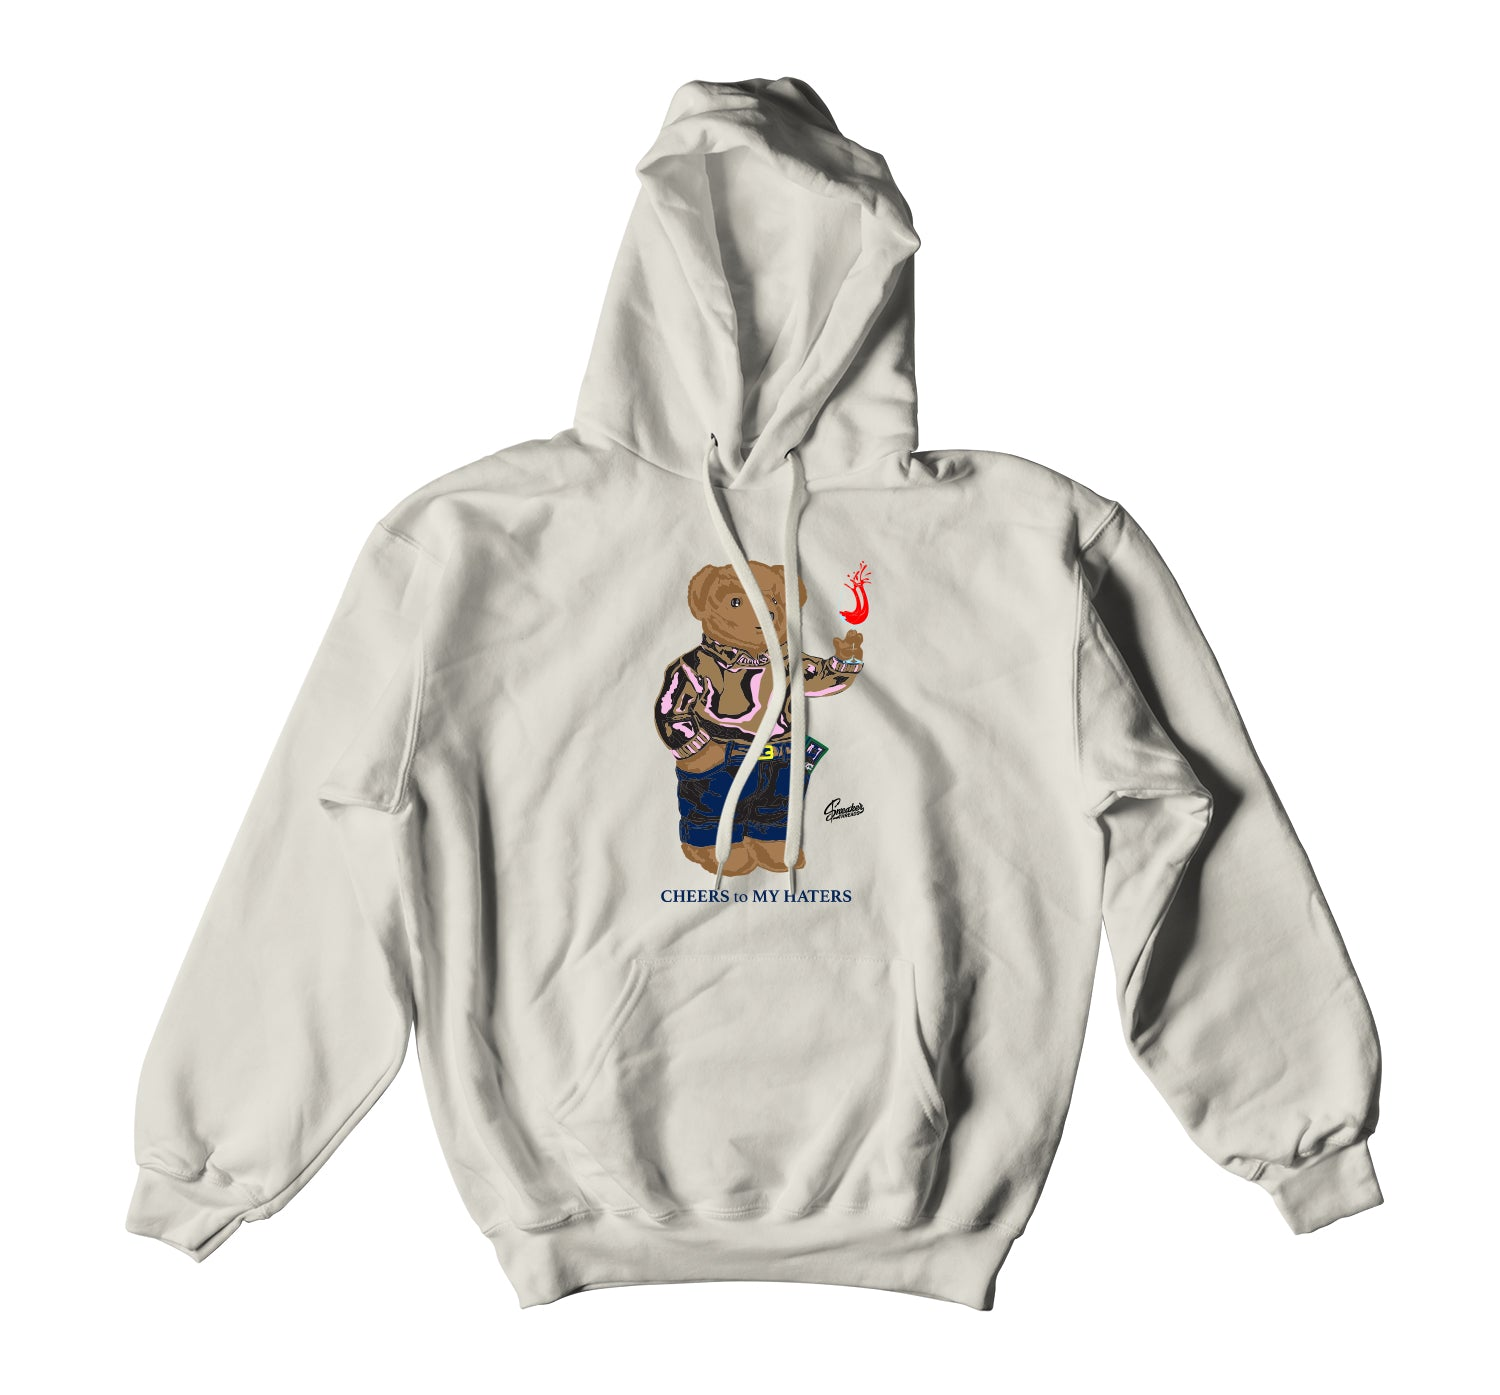 Dunk SB Travis Scott Cheers Bear Hoody